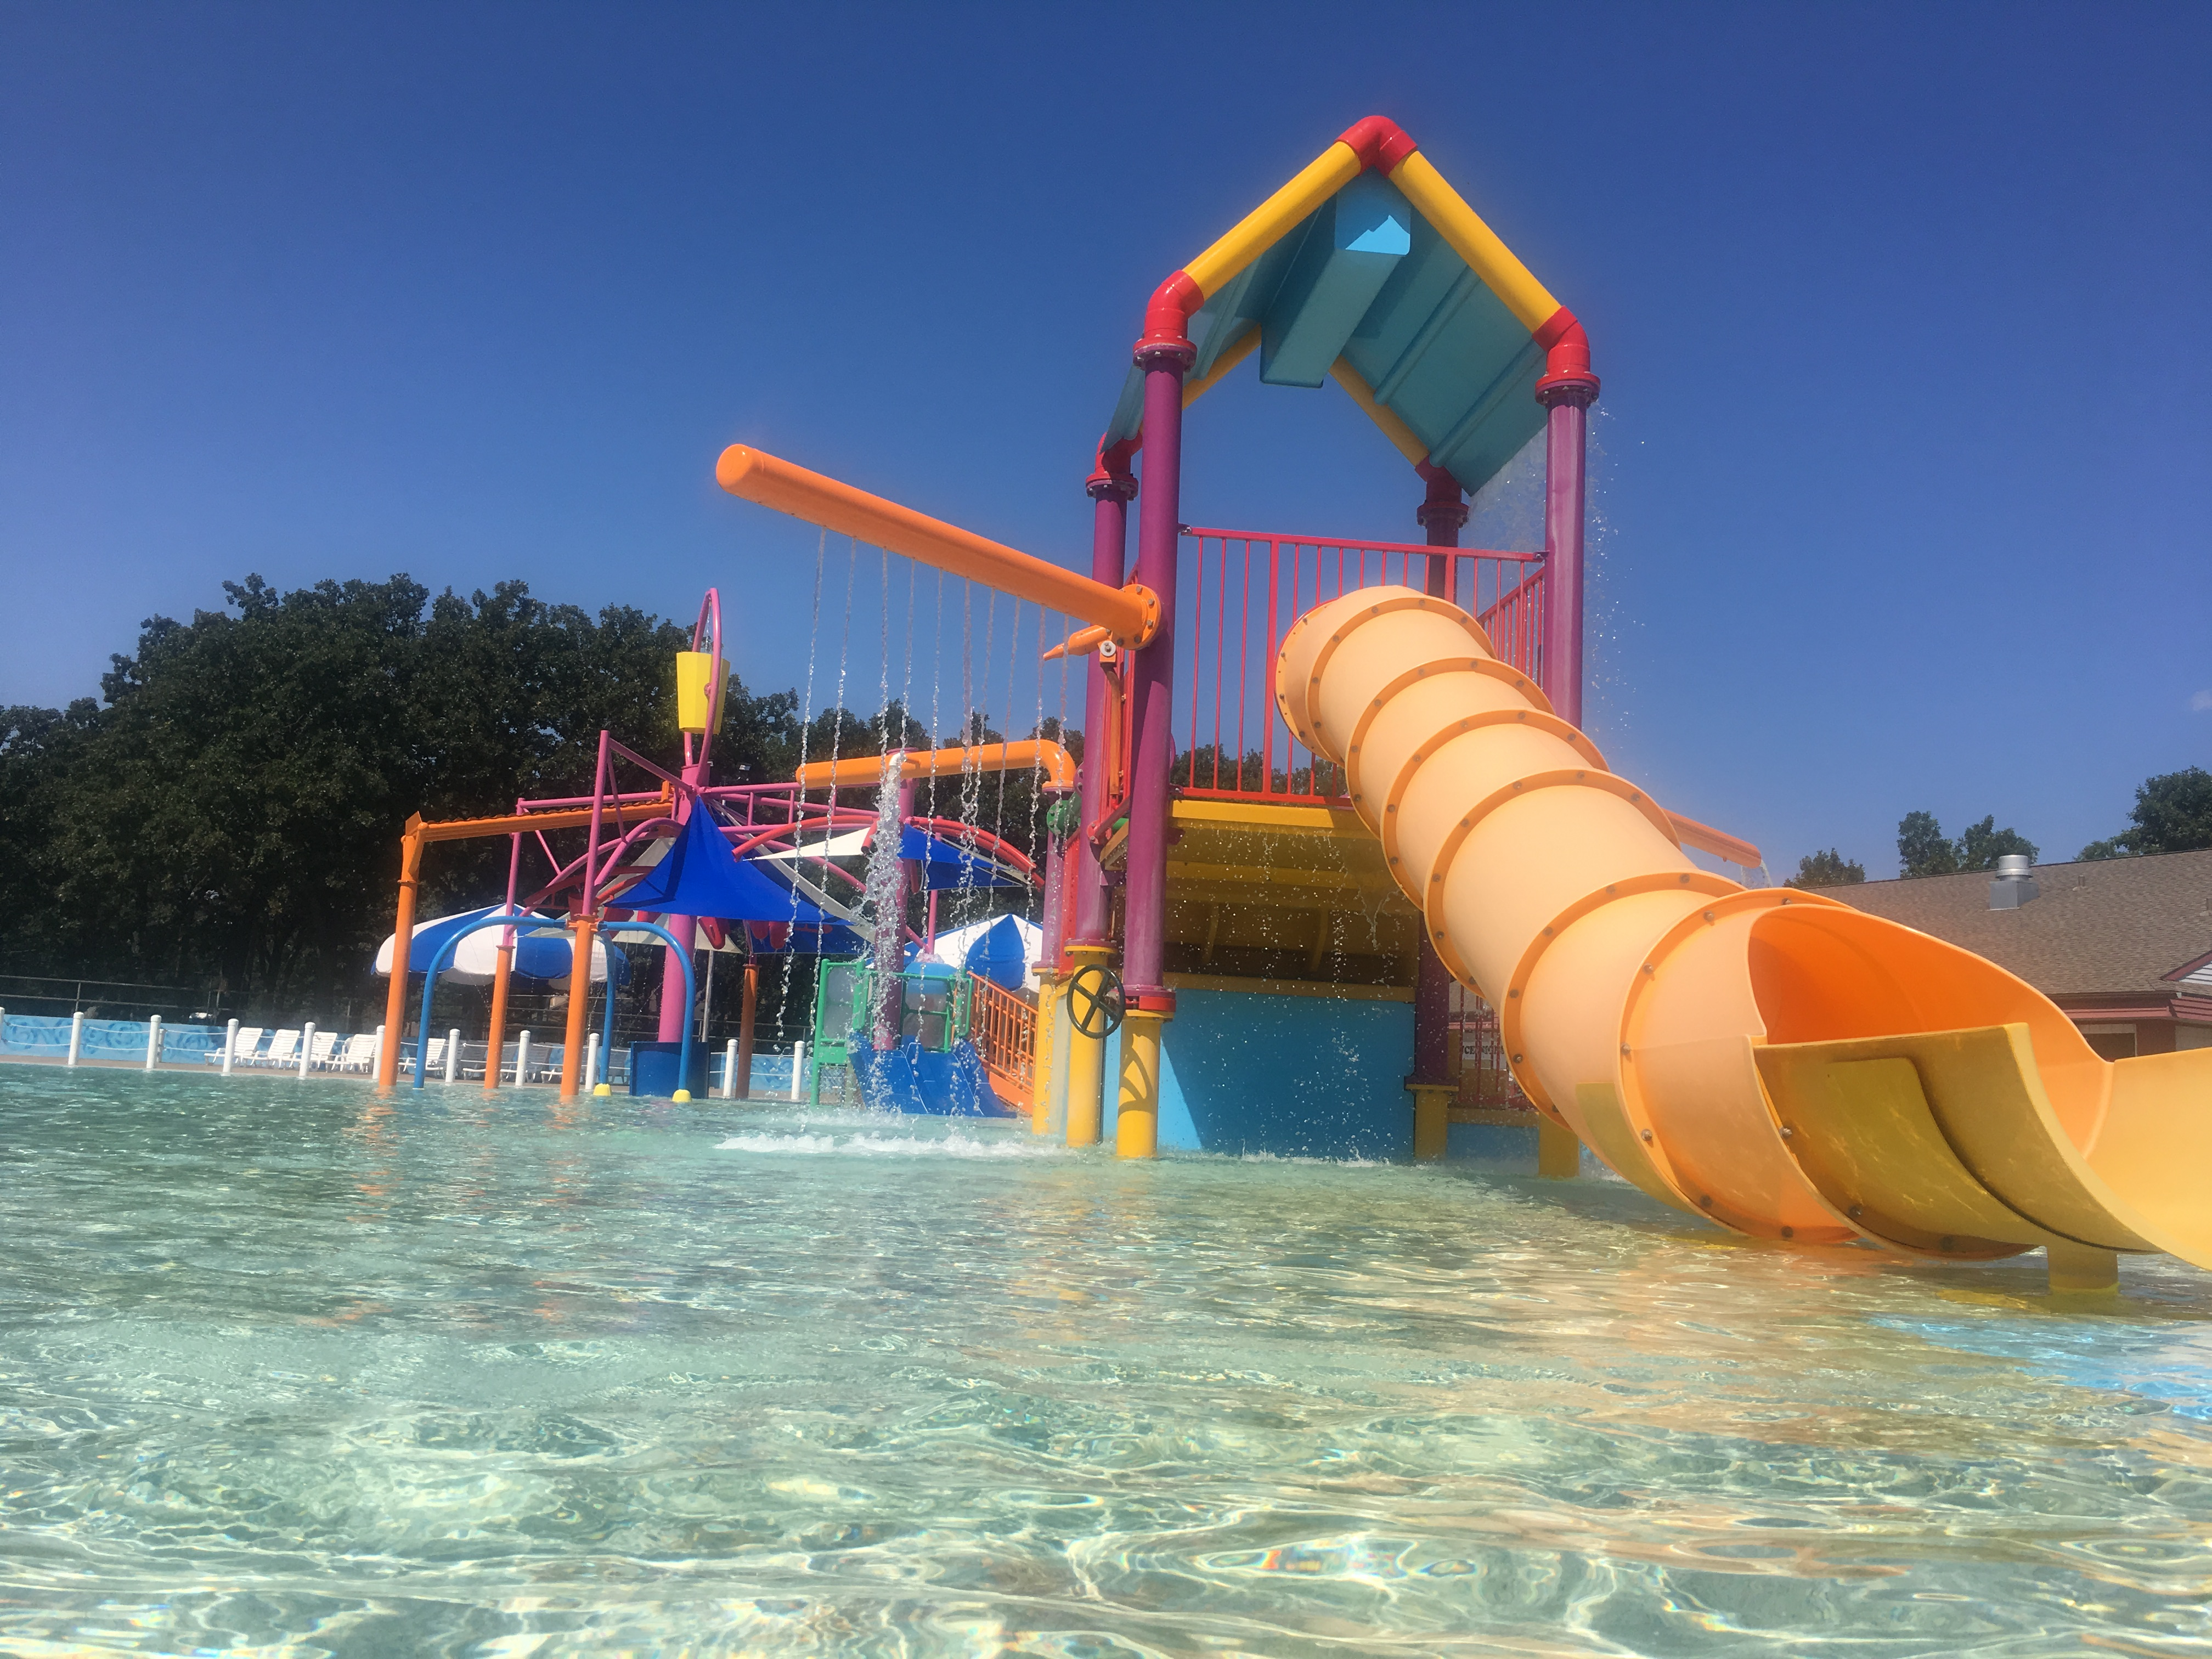 Water Slide and Playground Structure